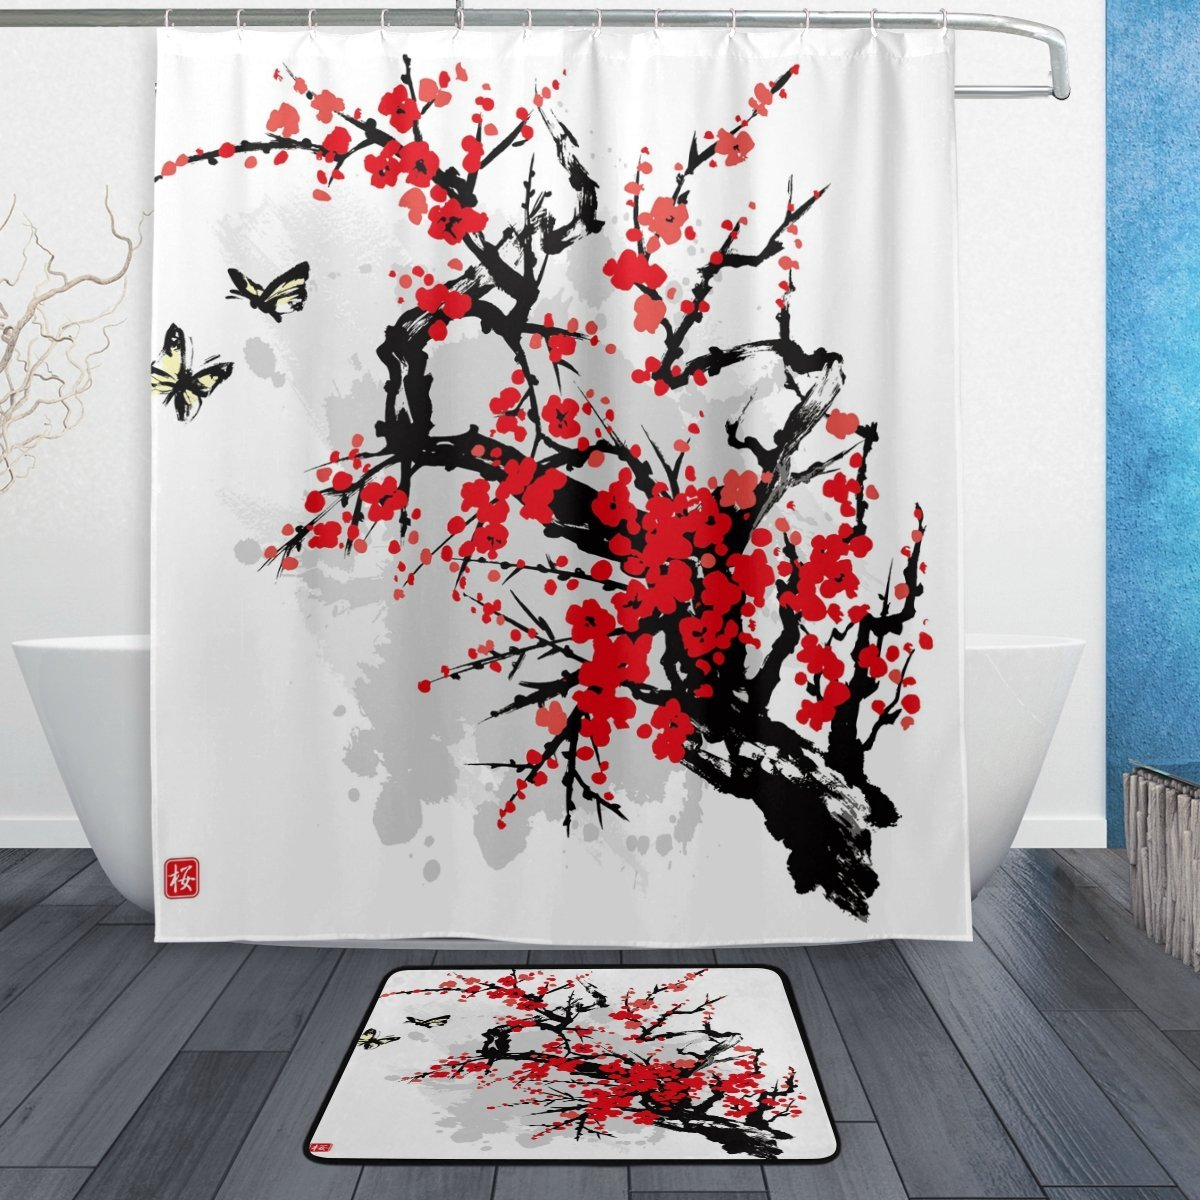 Us 15 35 36 Off Asian Japanese Shower Curtain And Mat Set Floral Flower Cherry Blossom Waterproof Fabric Bathroom Curtain In Shower Curtains From